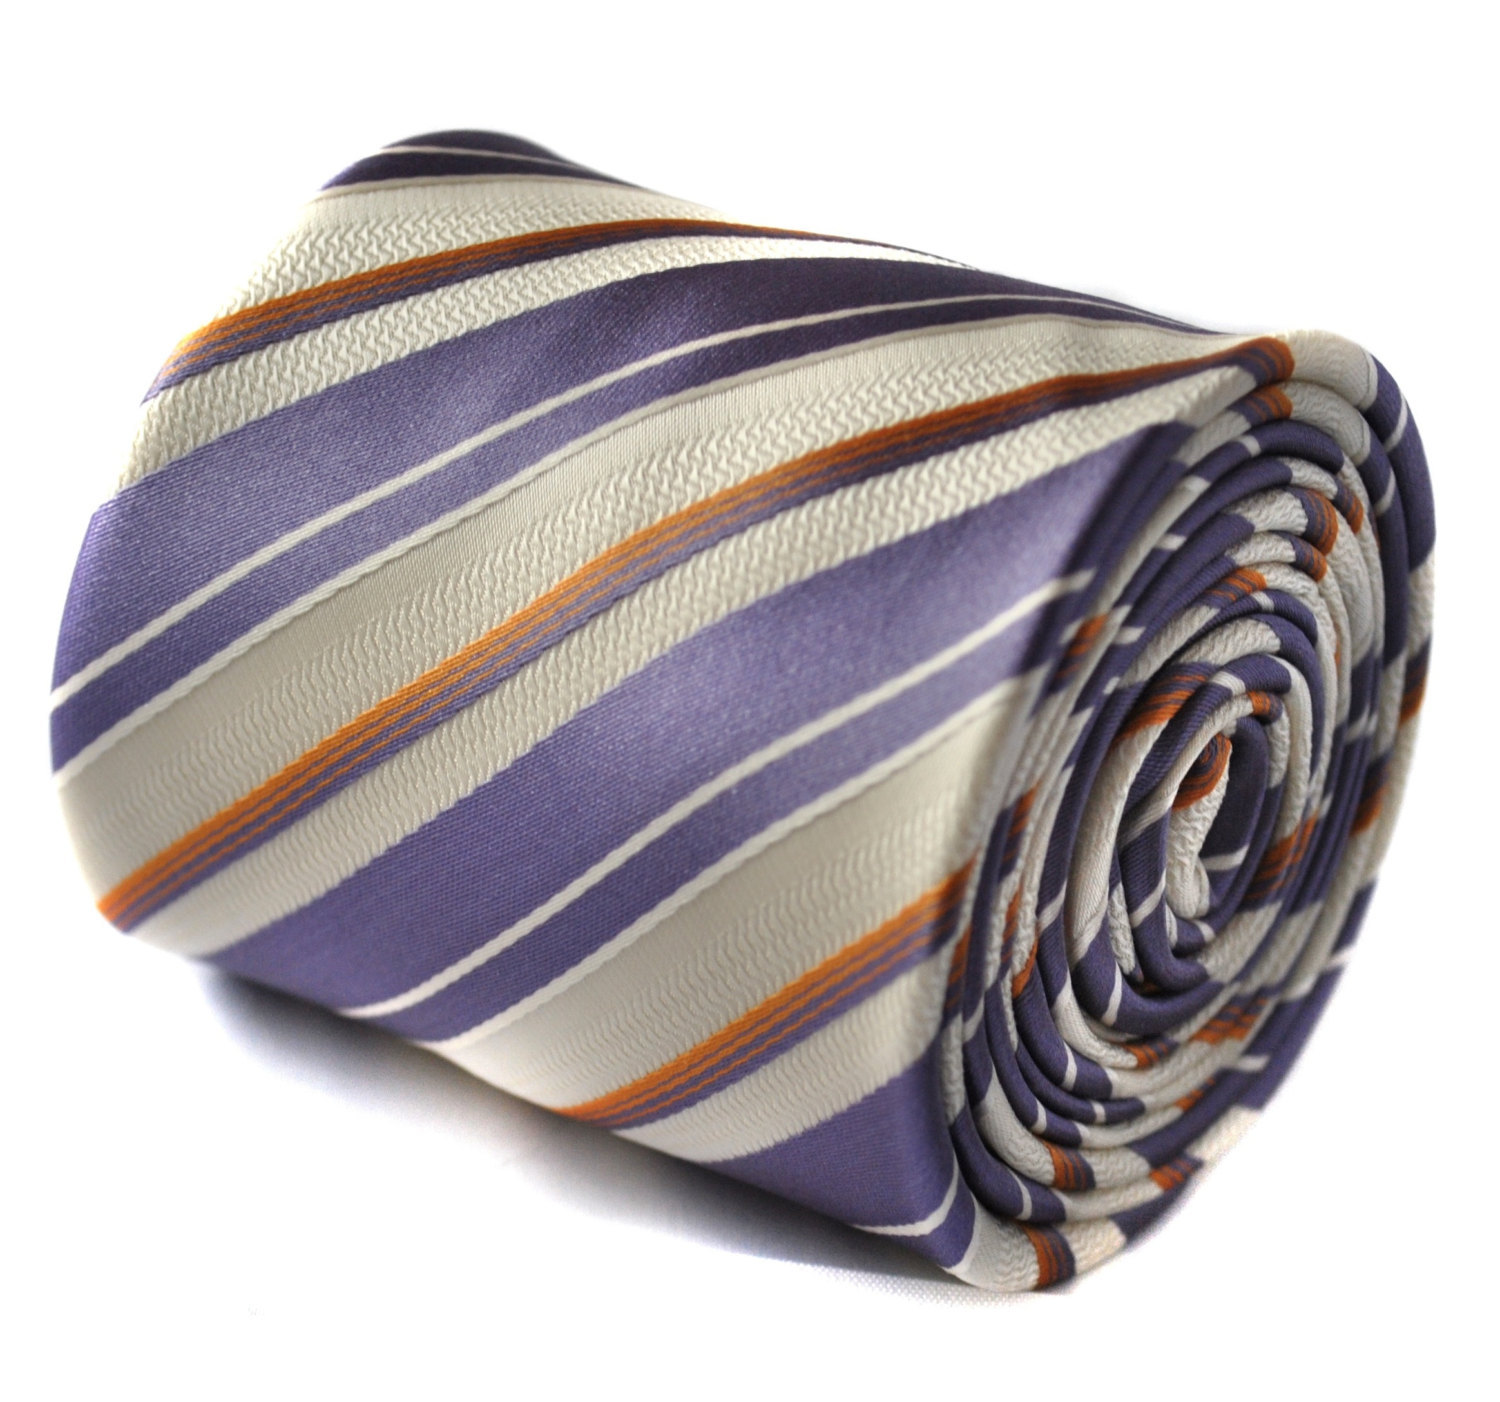 ivory, purple and orange striped tie with signature floral design to the rear by